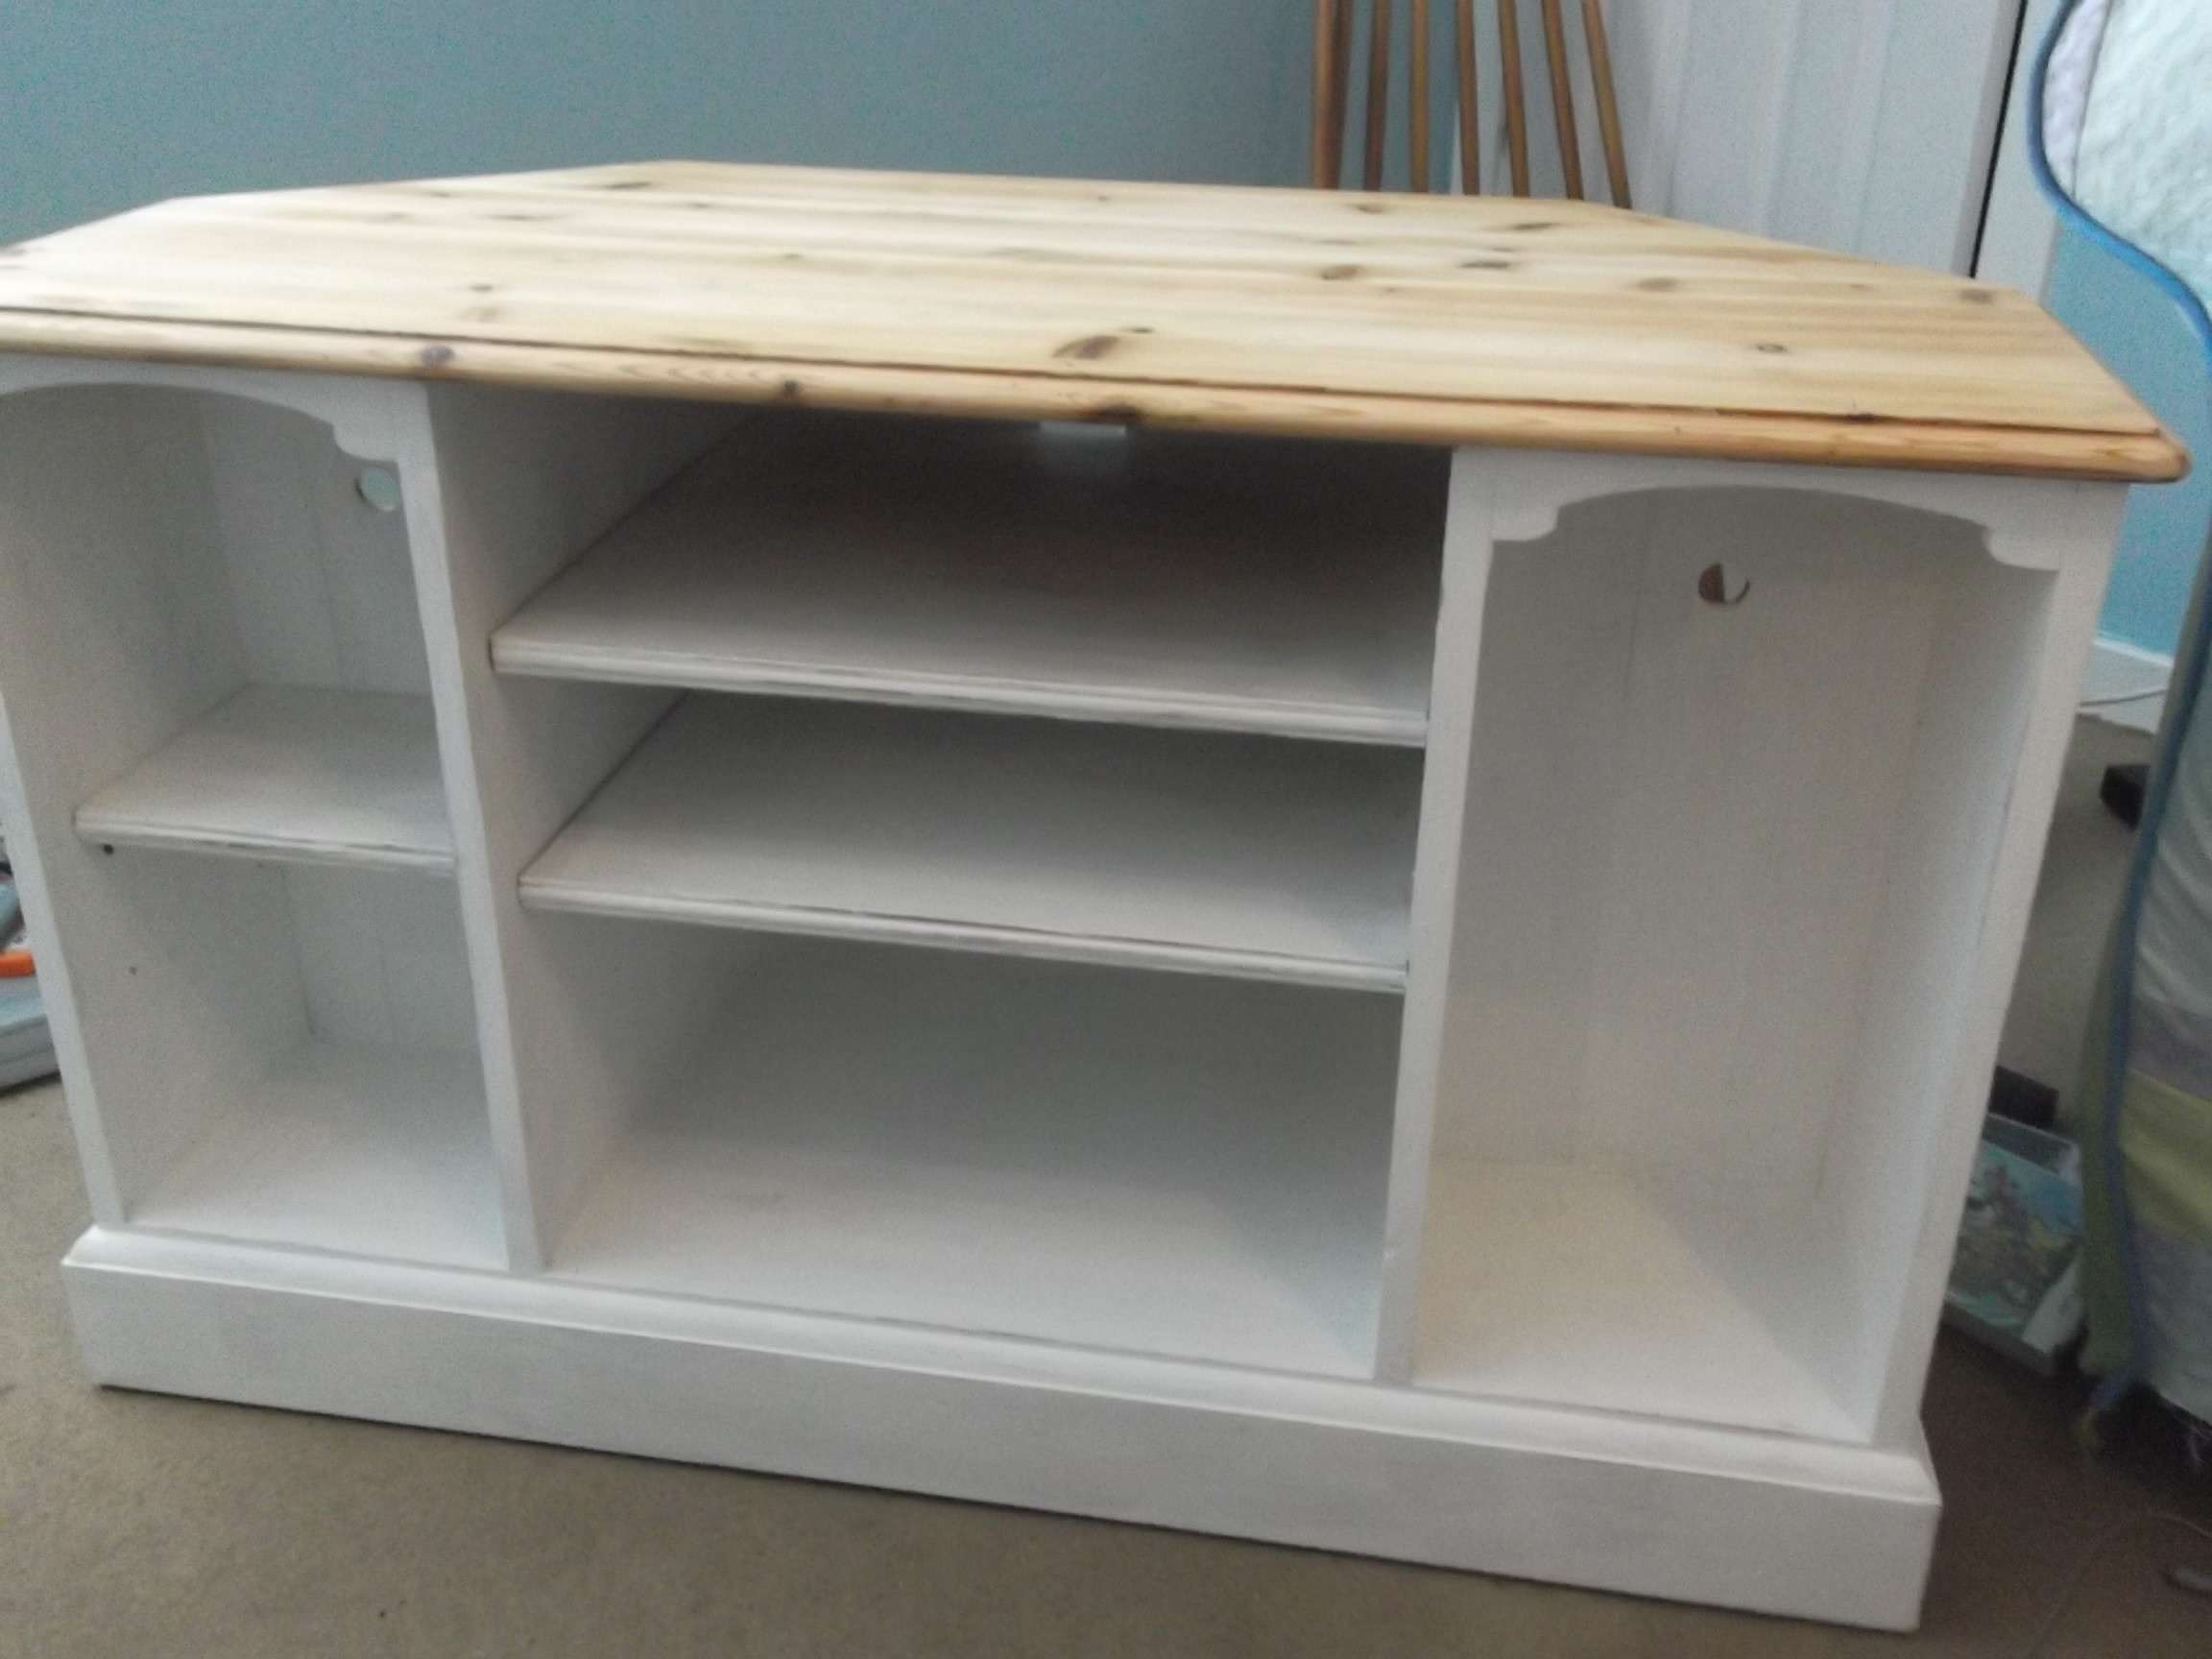 Shabby Chic Tv Cabinet With Doors – Imanisr Pertaining To Shabby Chic Tv Cabinets (View 14 of 20)